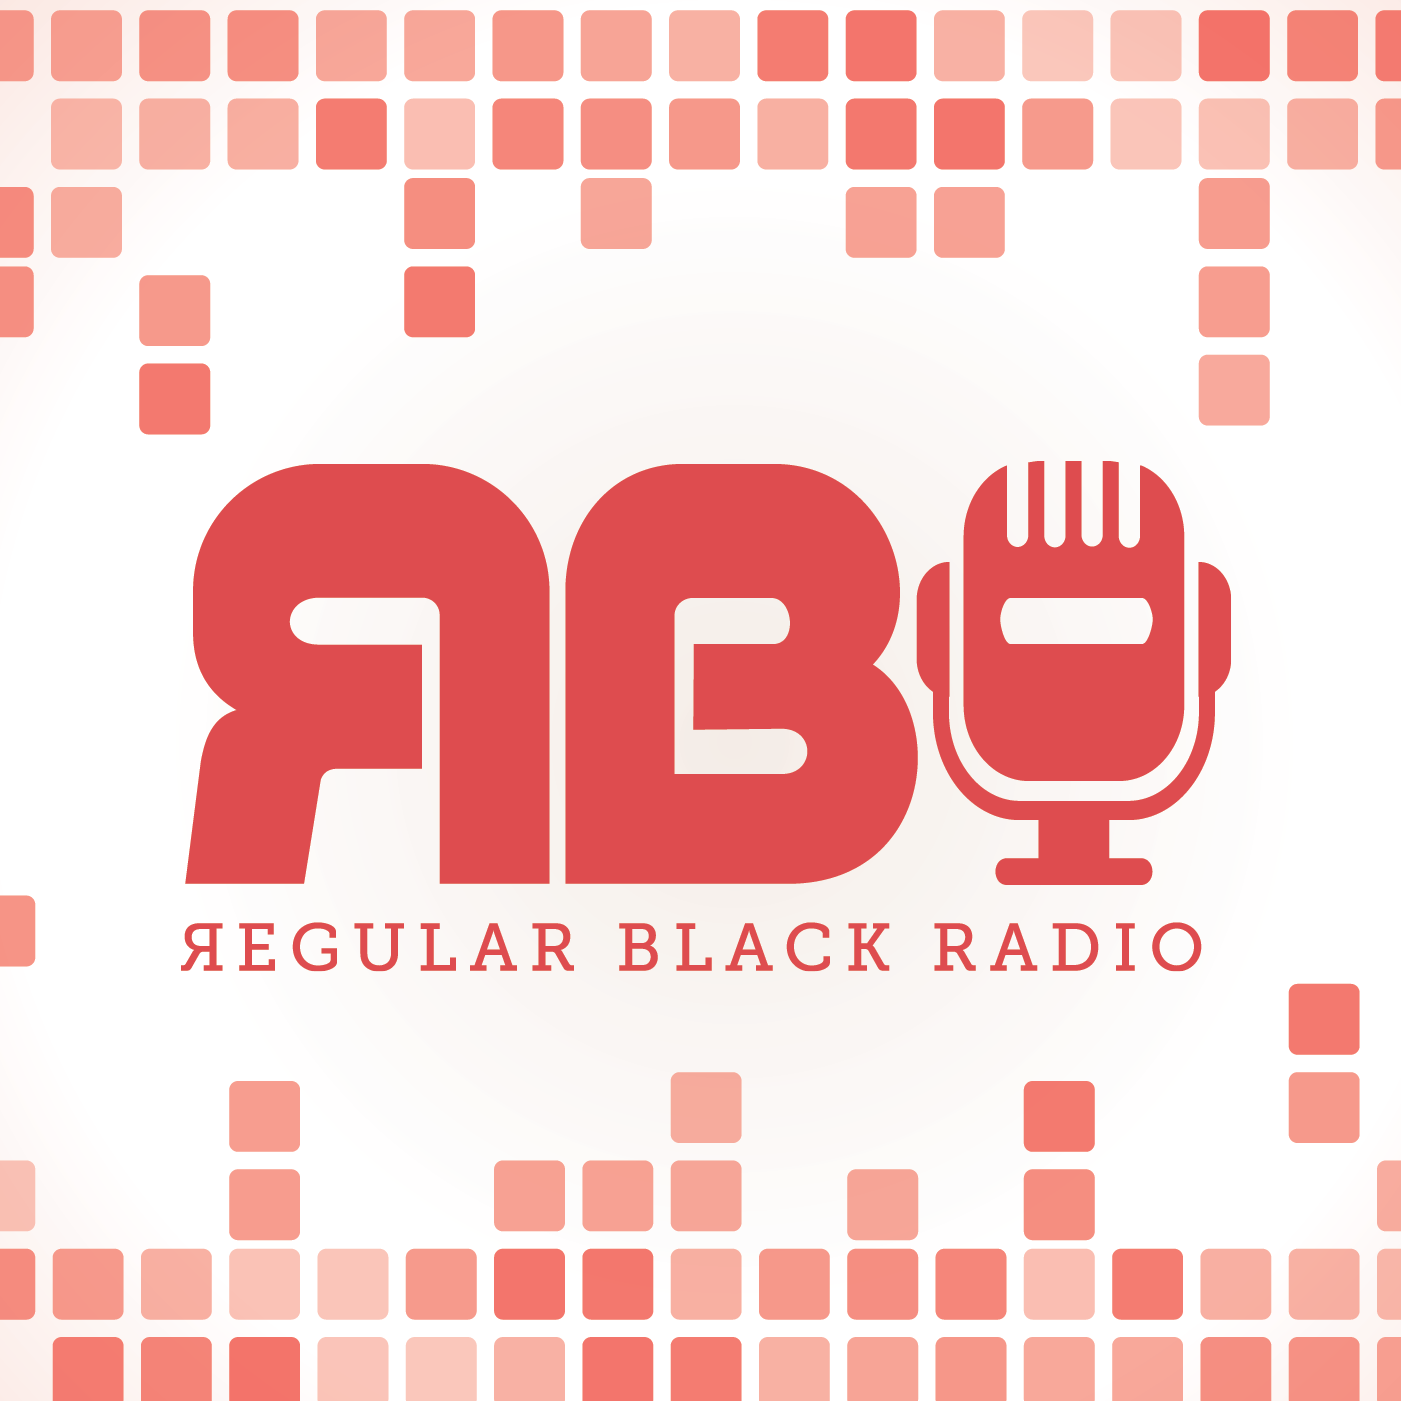 Regular Black Radio